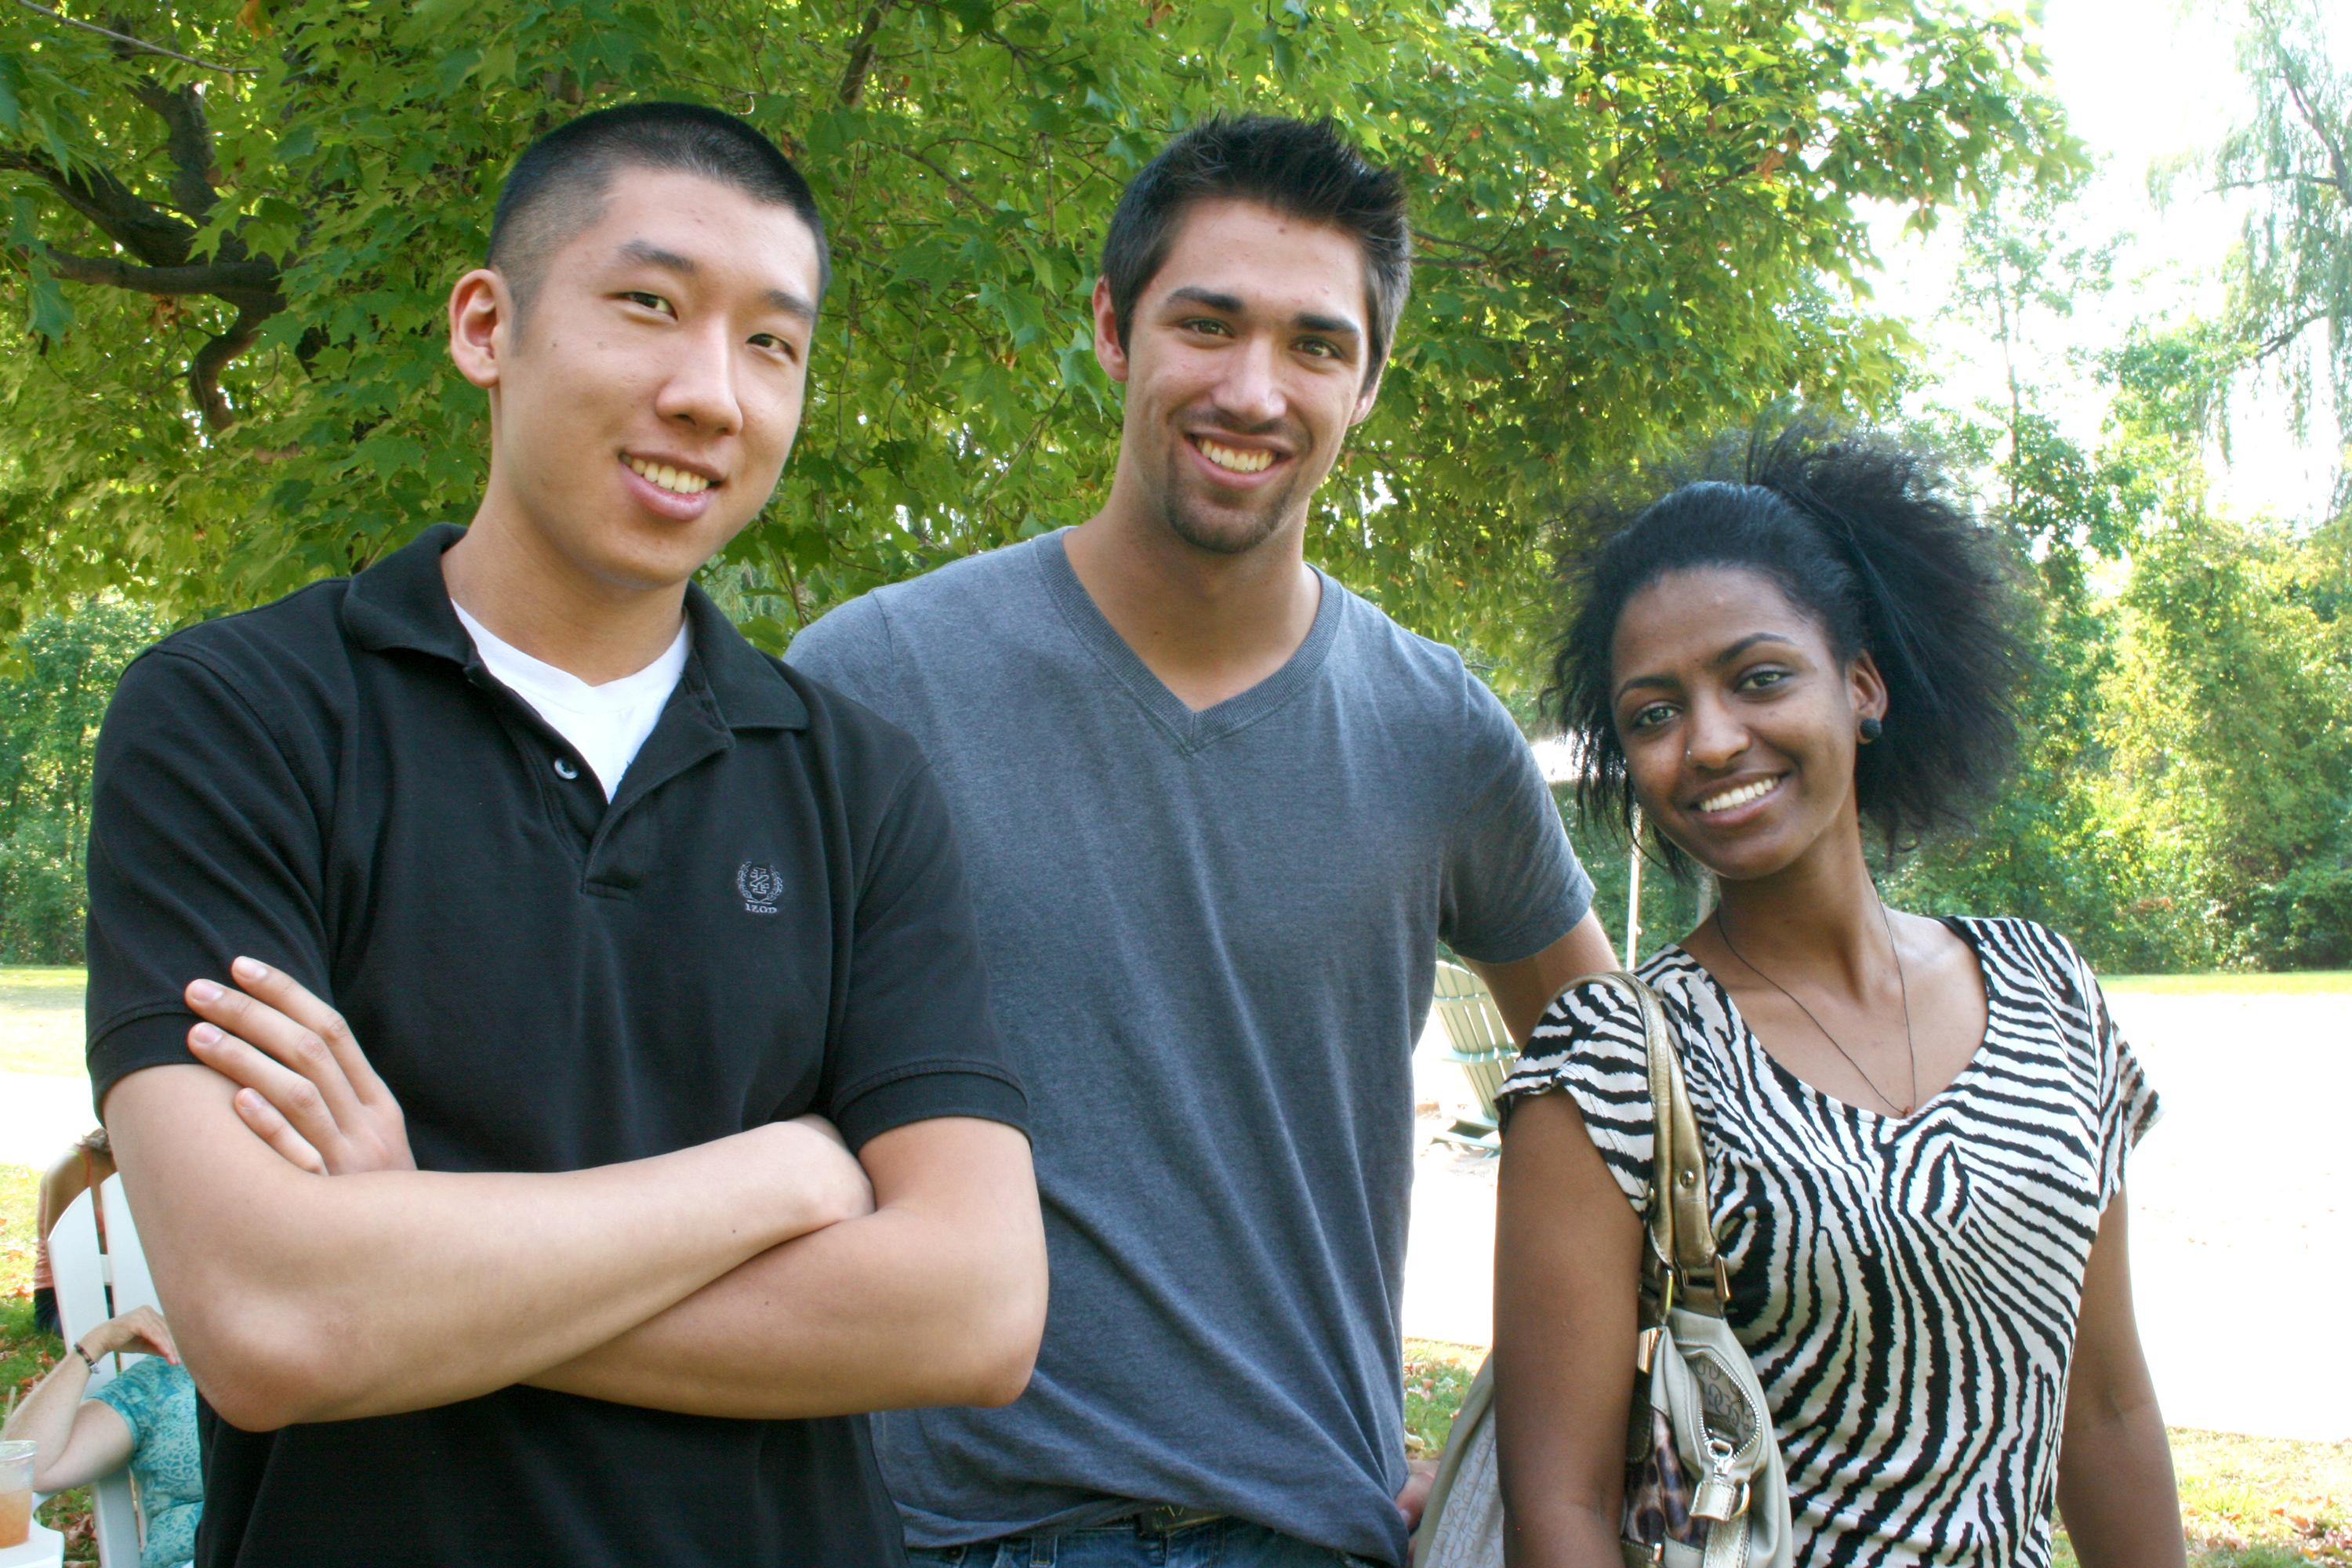 group shot of three students